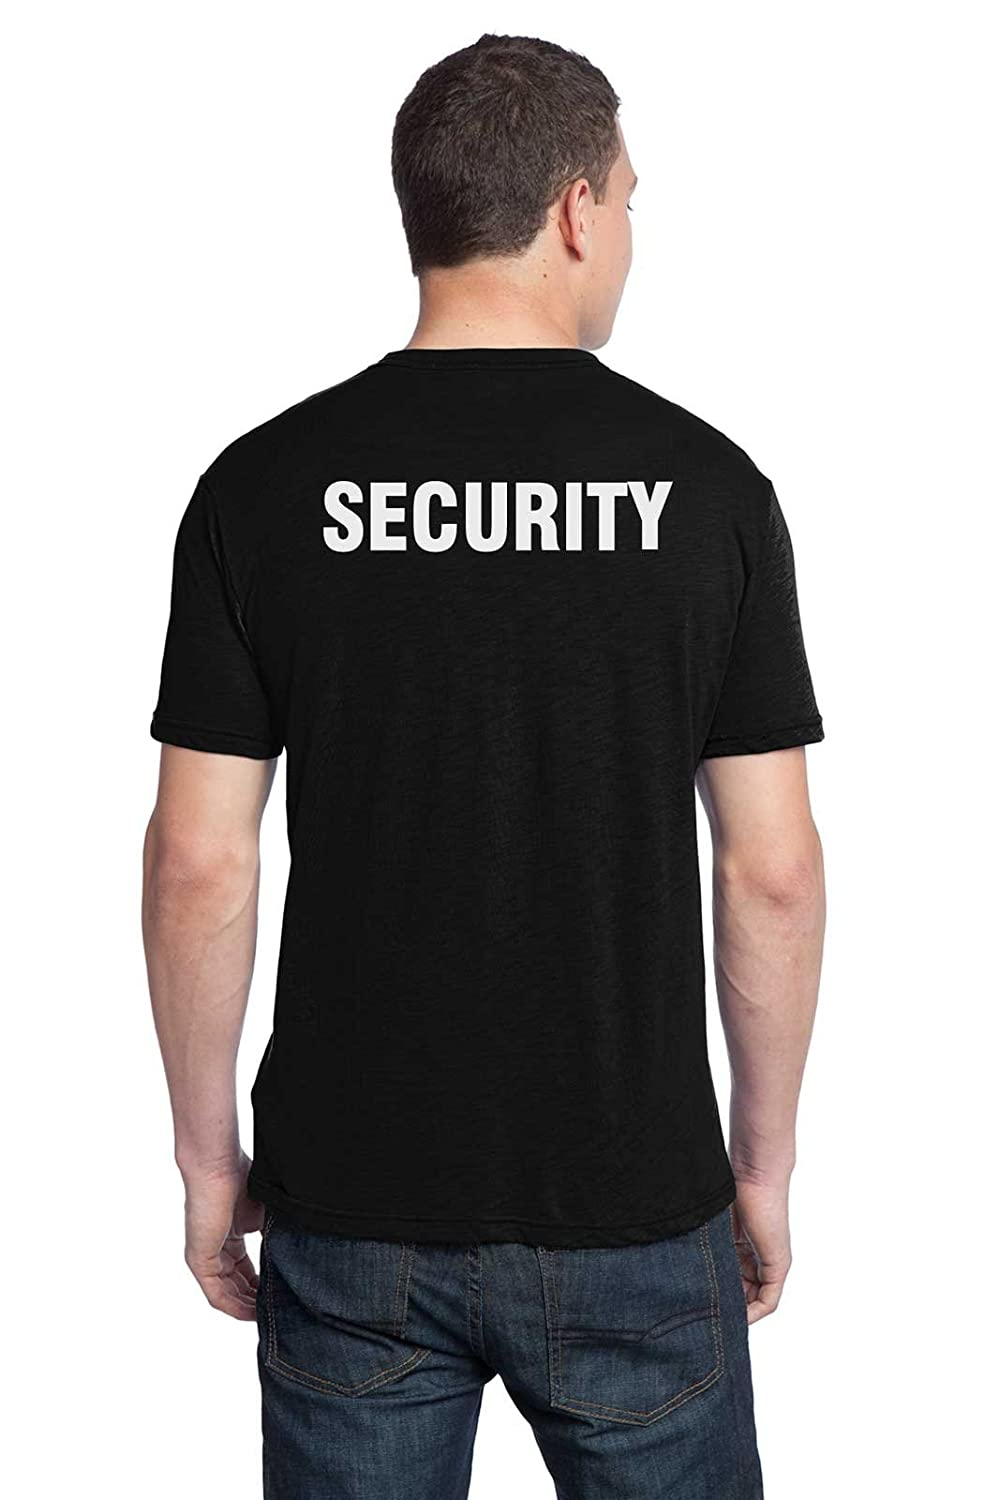 Black t shirt security - Amazon Com Security T Shirt In Black Printed Left Chest And Full Back Clothing